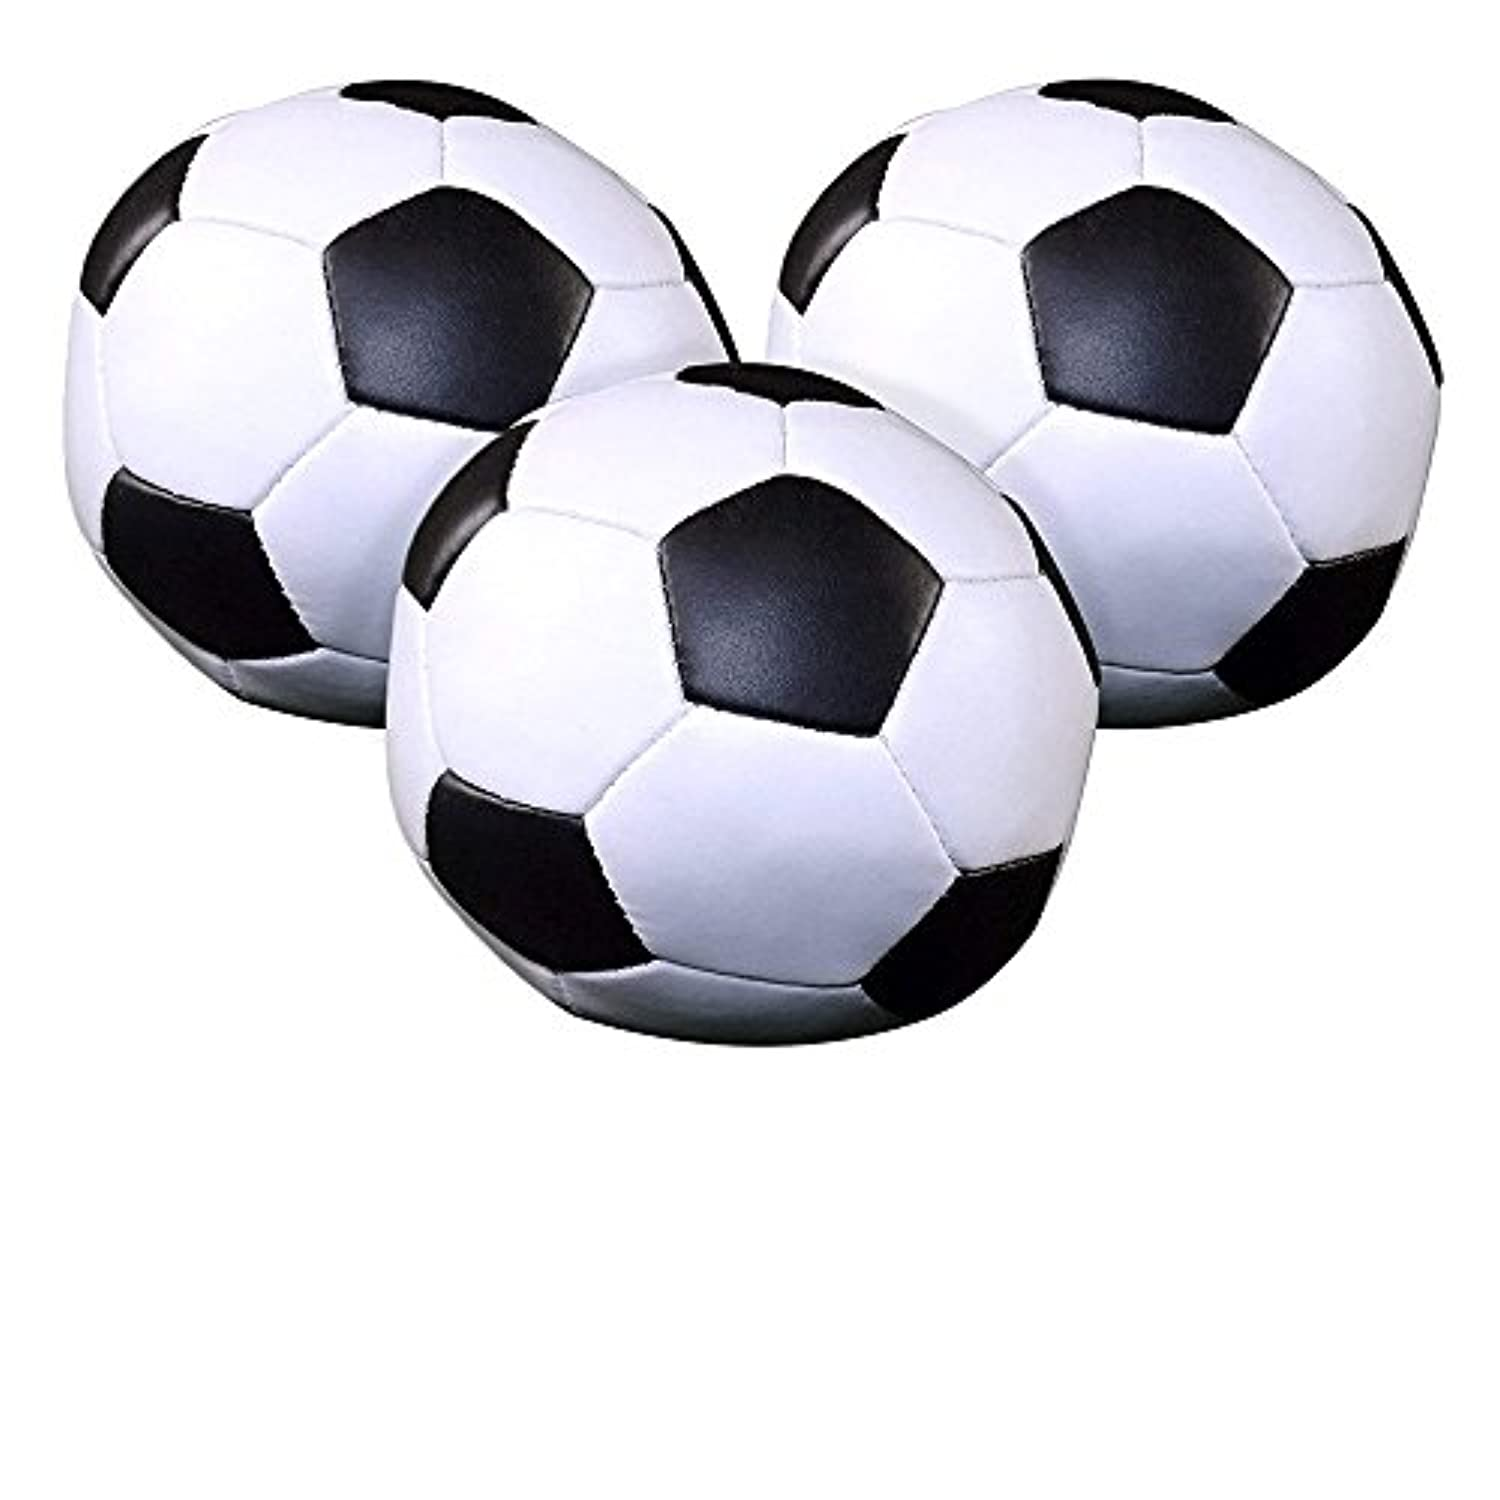 (Soccer Ball) - Set of 3 Soccer Ball 10cm Pillow Ball, Soft Poly-Filled Squeeze Toys.